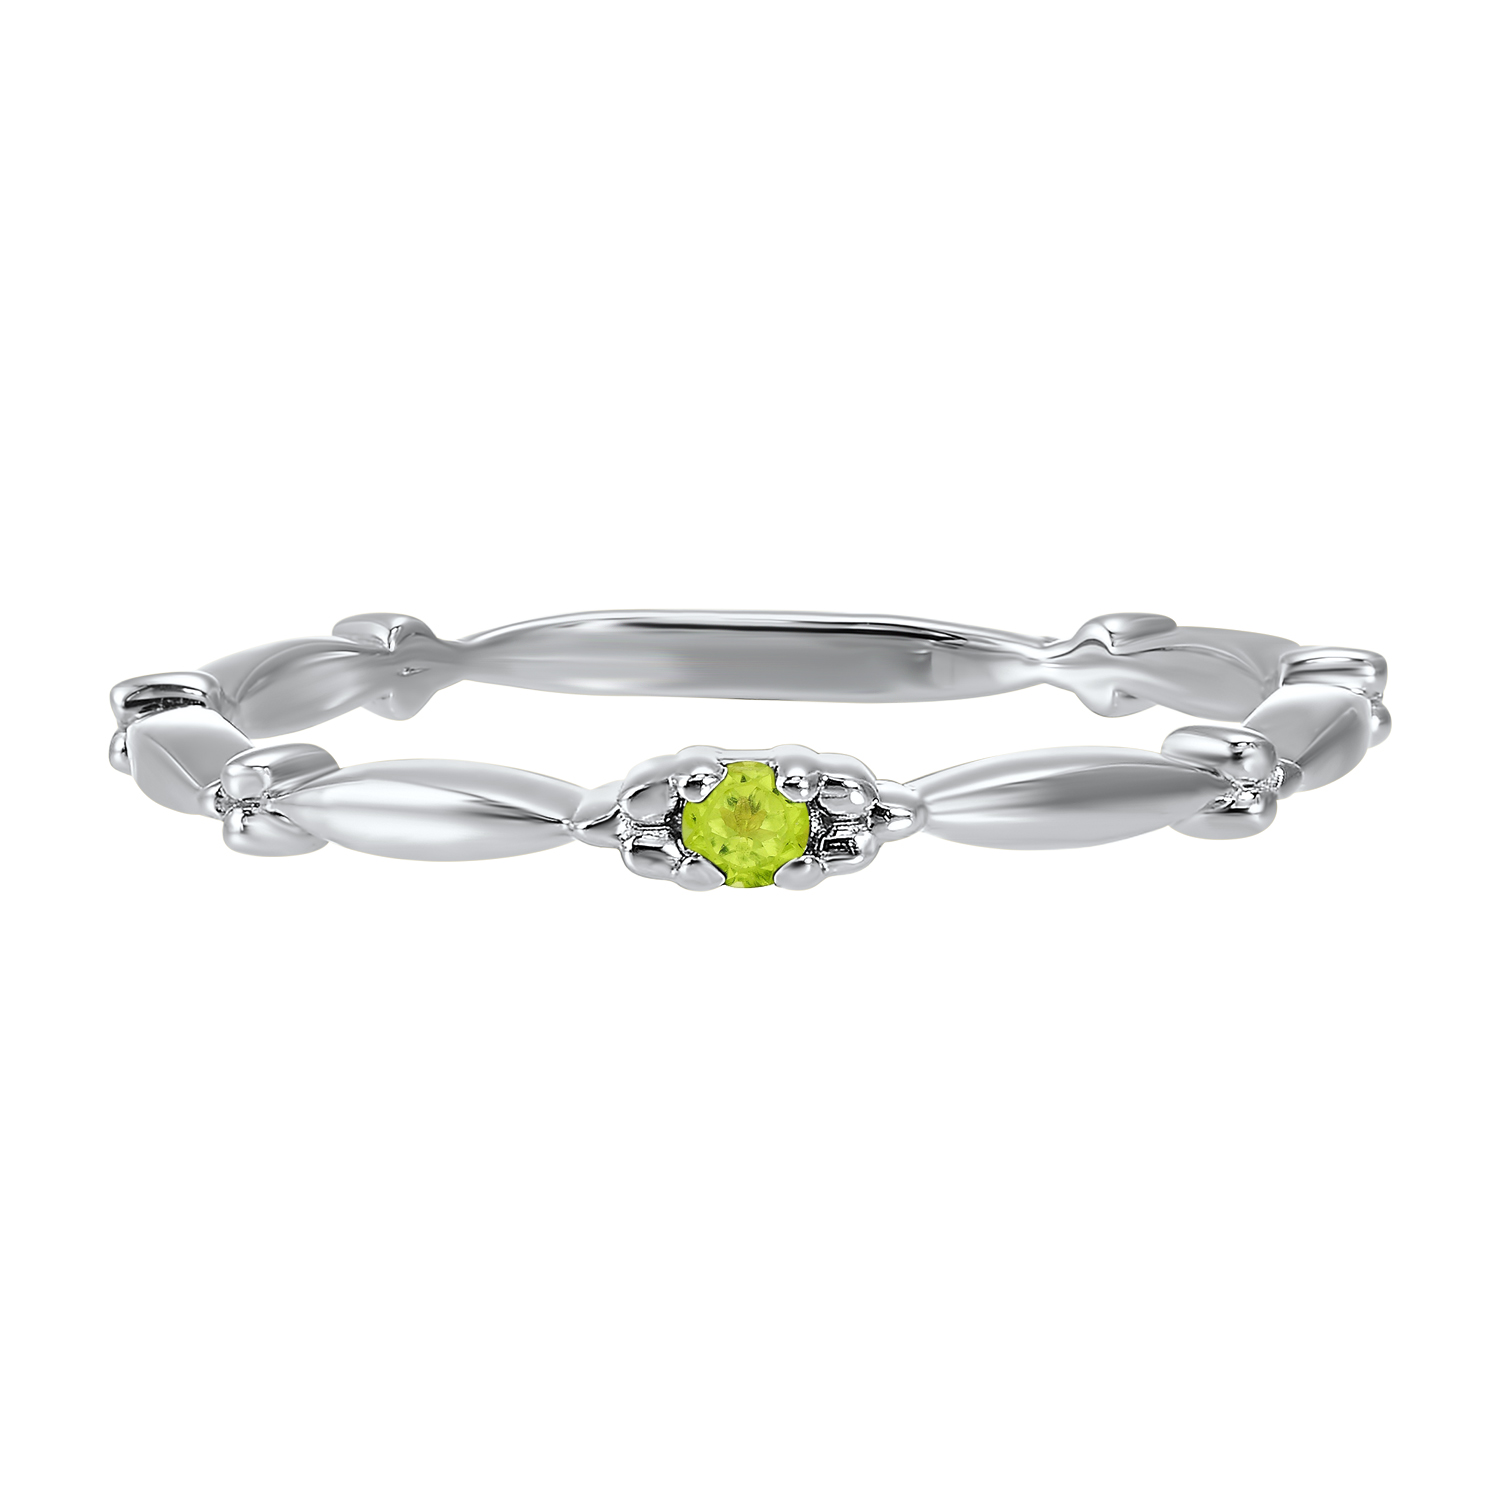 10K White Gold Stackable Prong Peridot Band Moseley Diamond Showcase Inc Columbia, SC